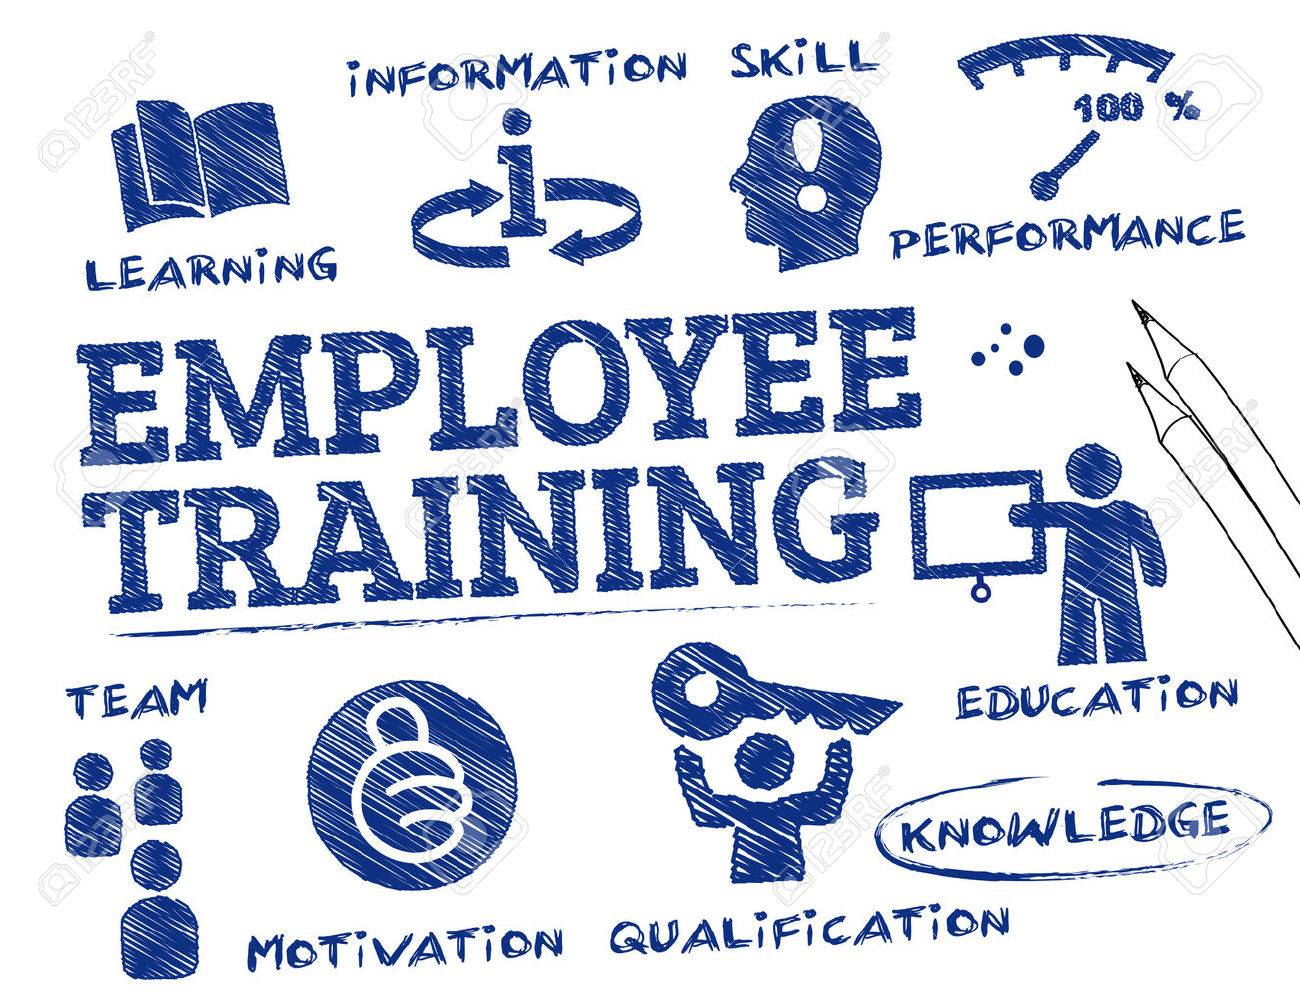 Time to Learn! - All new employees are required to complete the training described below. As you progress through the training, you will move into different roles within the cafe.